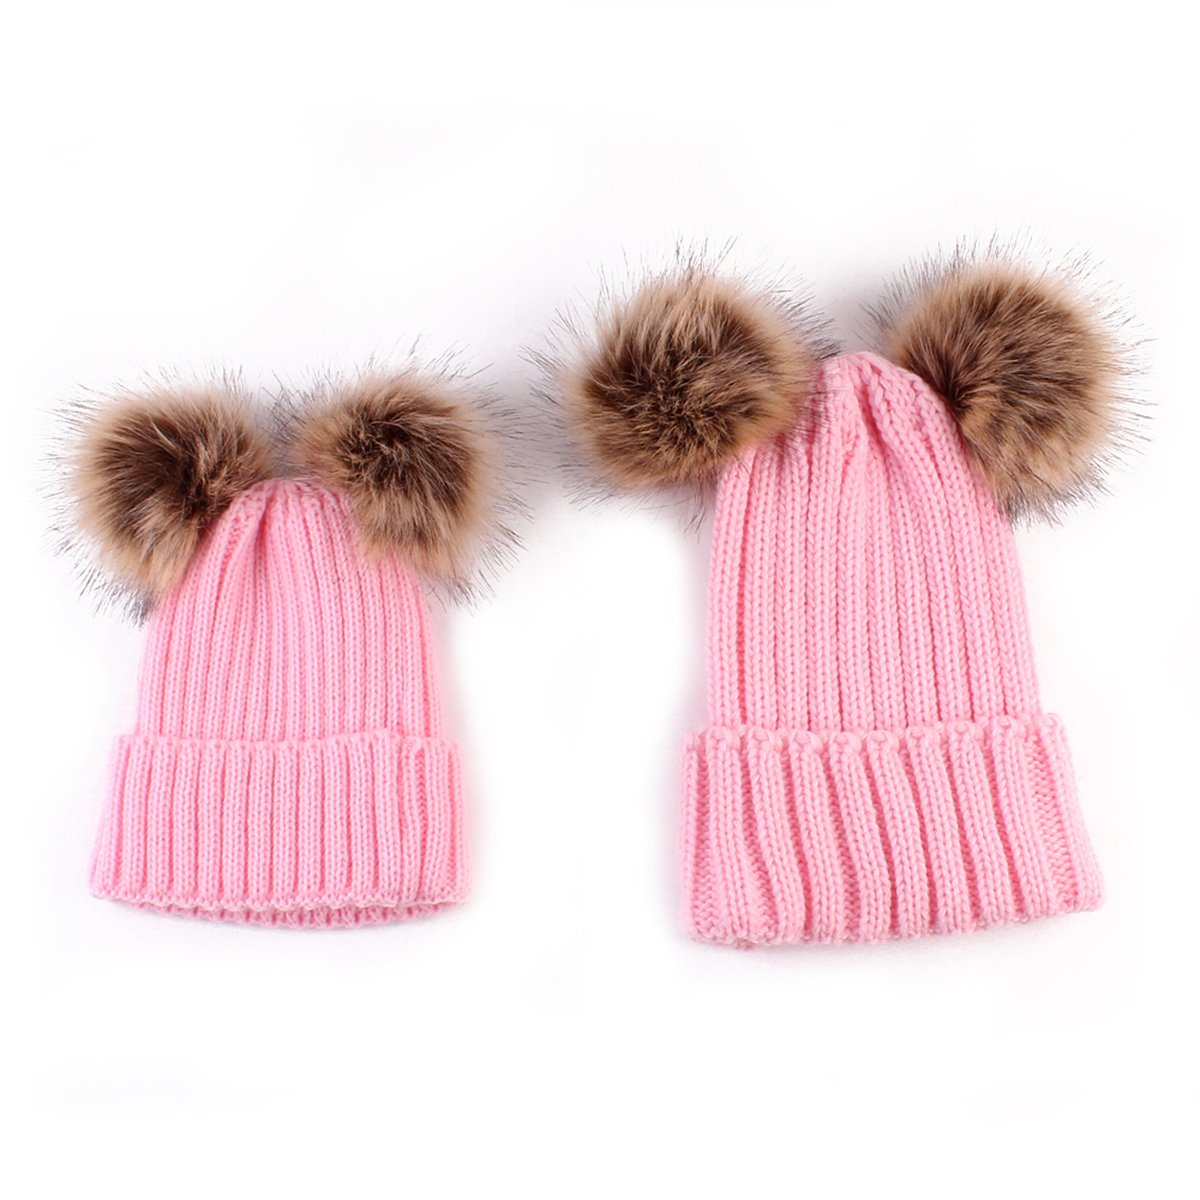 Amazon.com  puseky Family Hats Mother   Baby Winter Warm Knit Crochet Pom  Poms Beanie Caps (Beige 2)  Clothing 6d544cde5bb